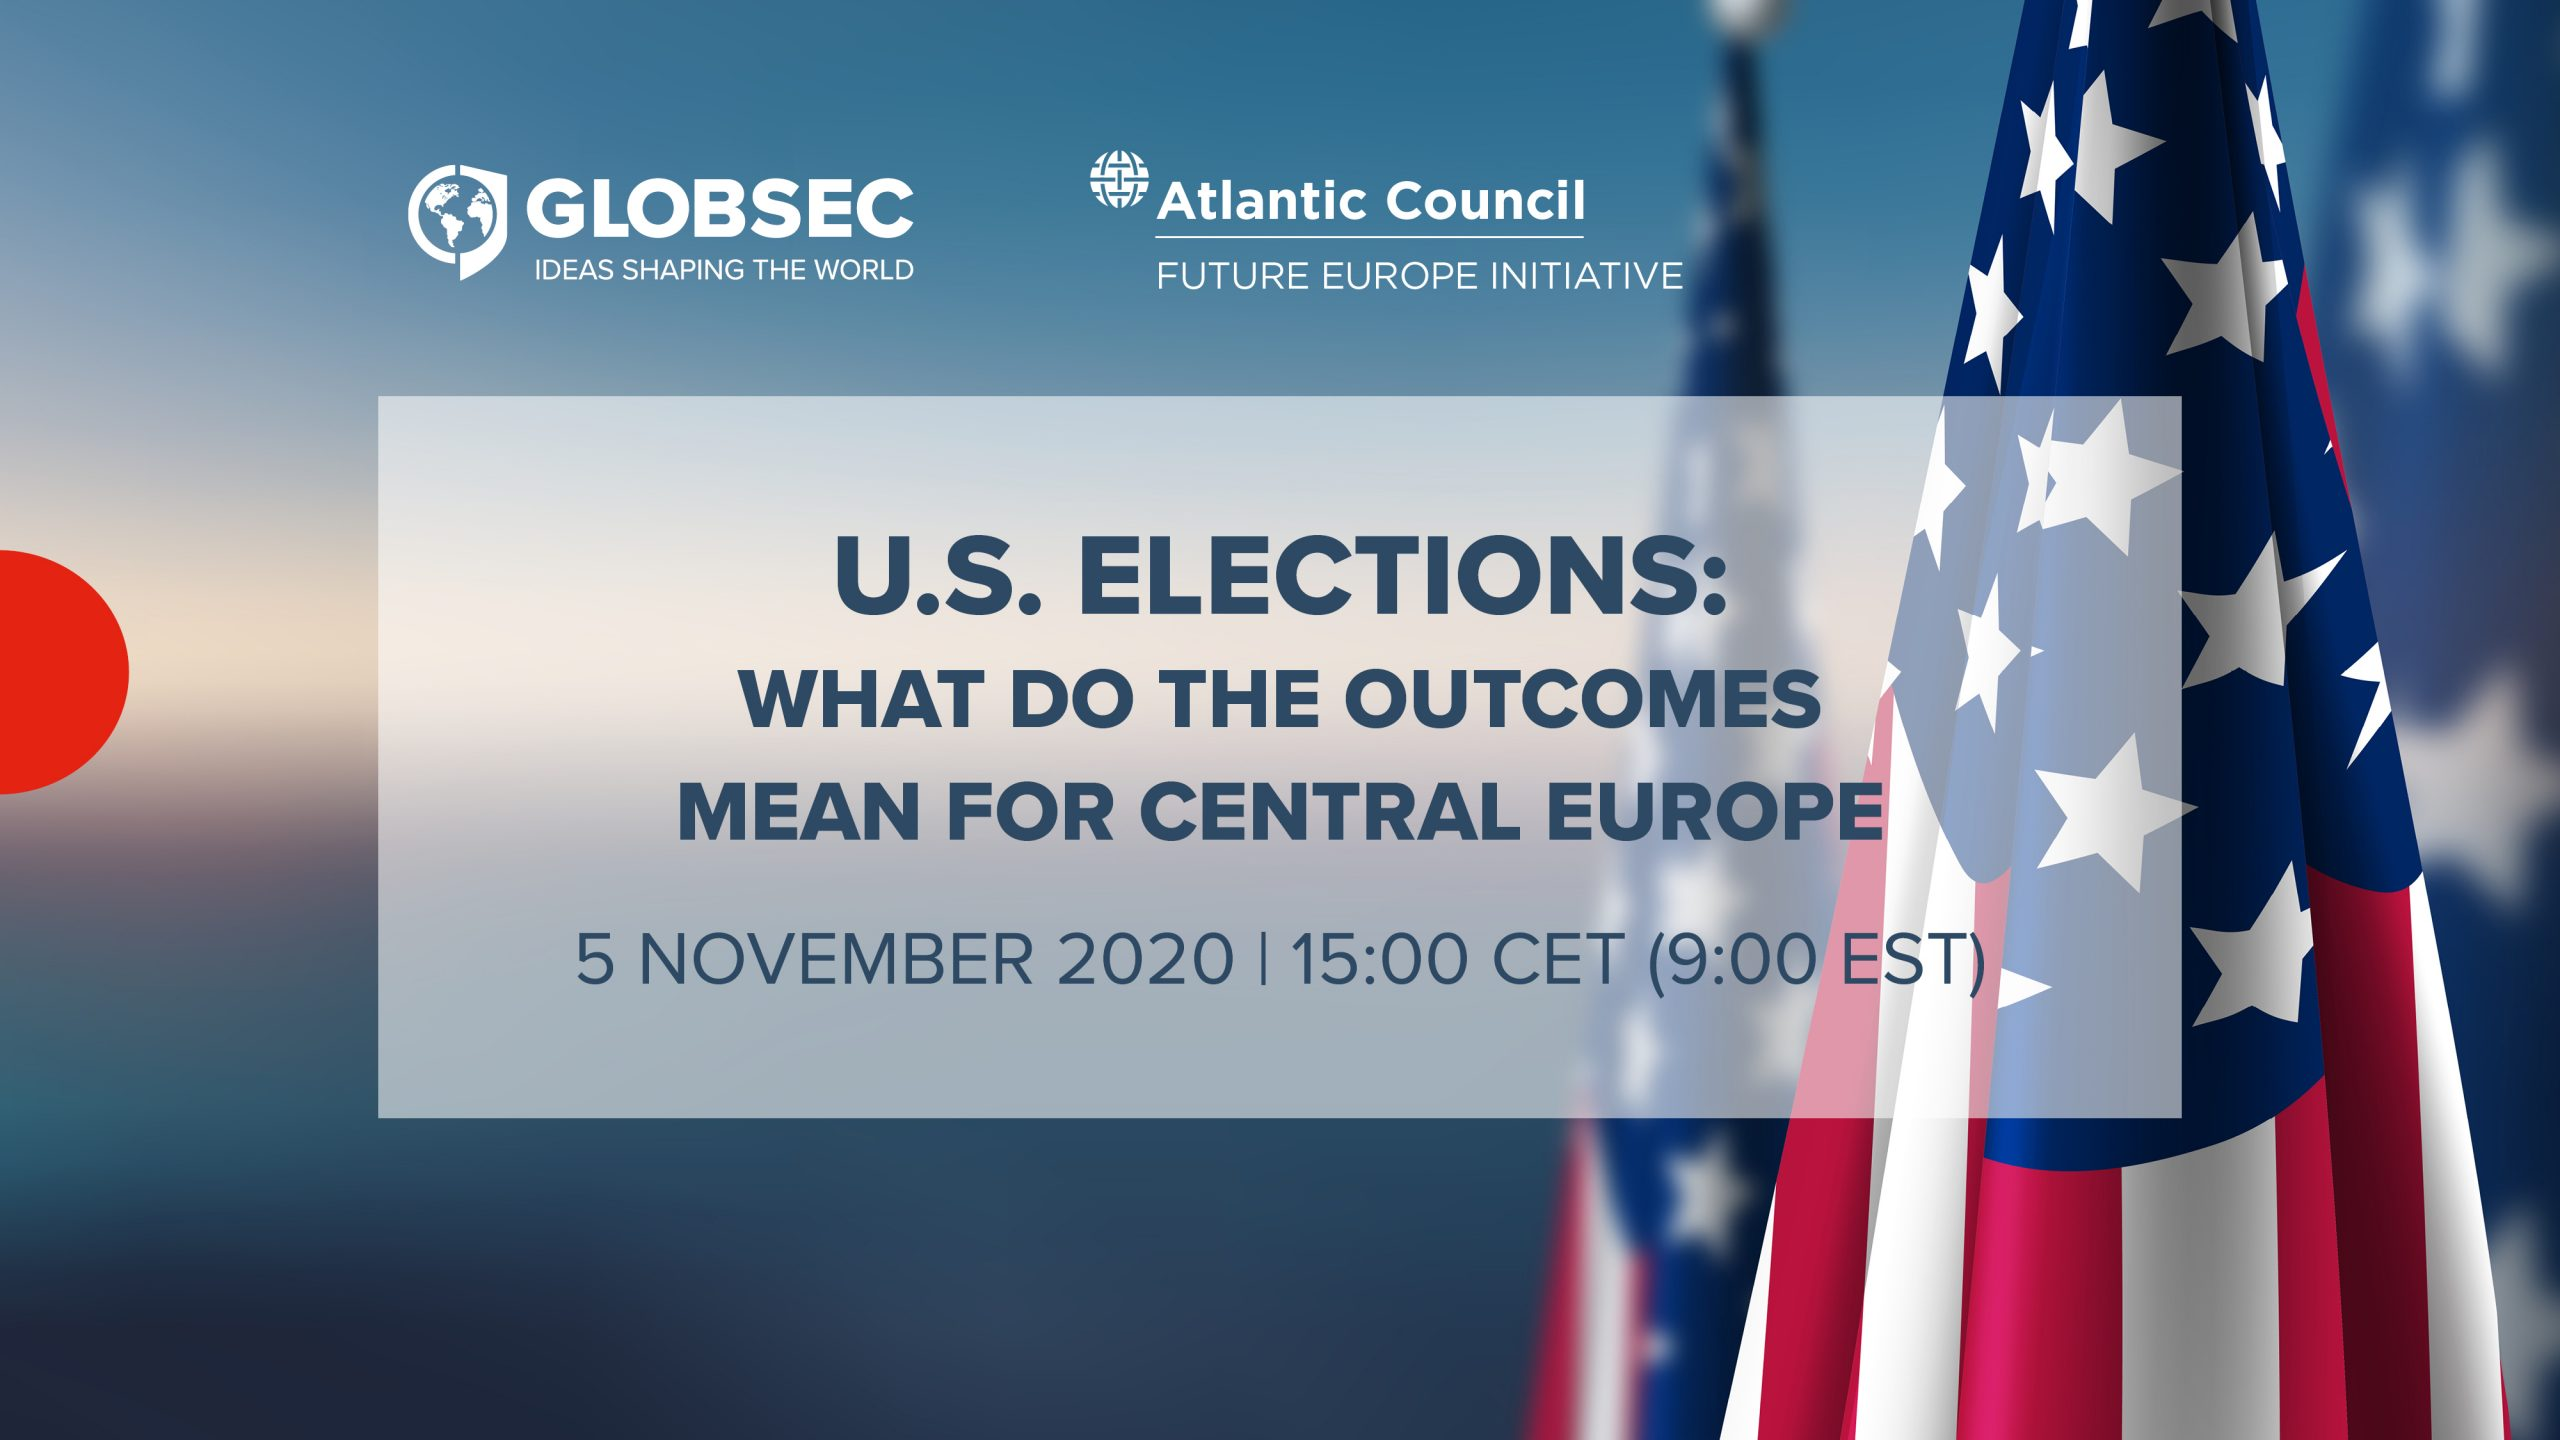 U.S. Elections: What Do the Outcomes Mean for Central Europe?